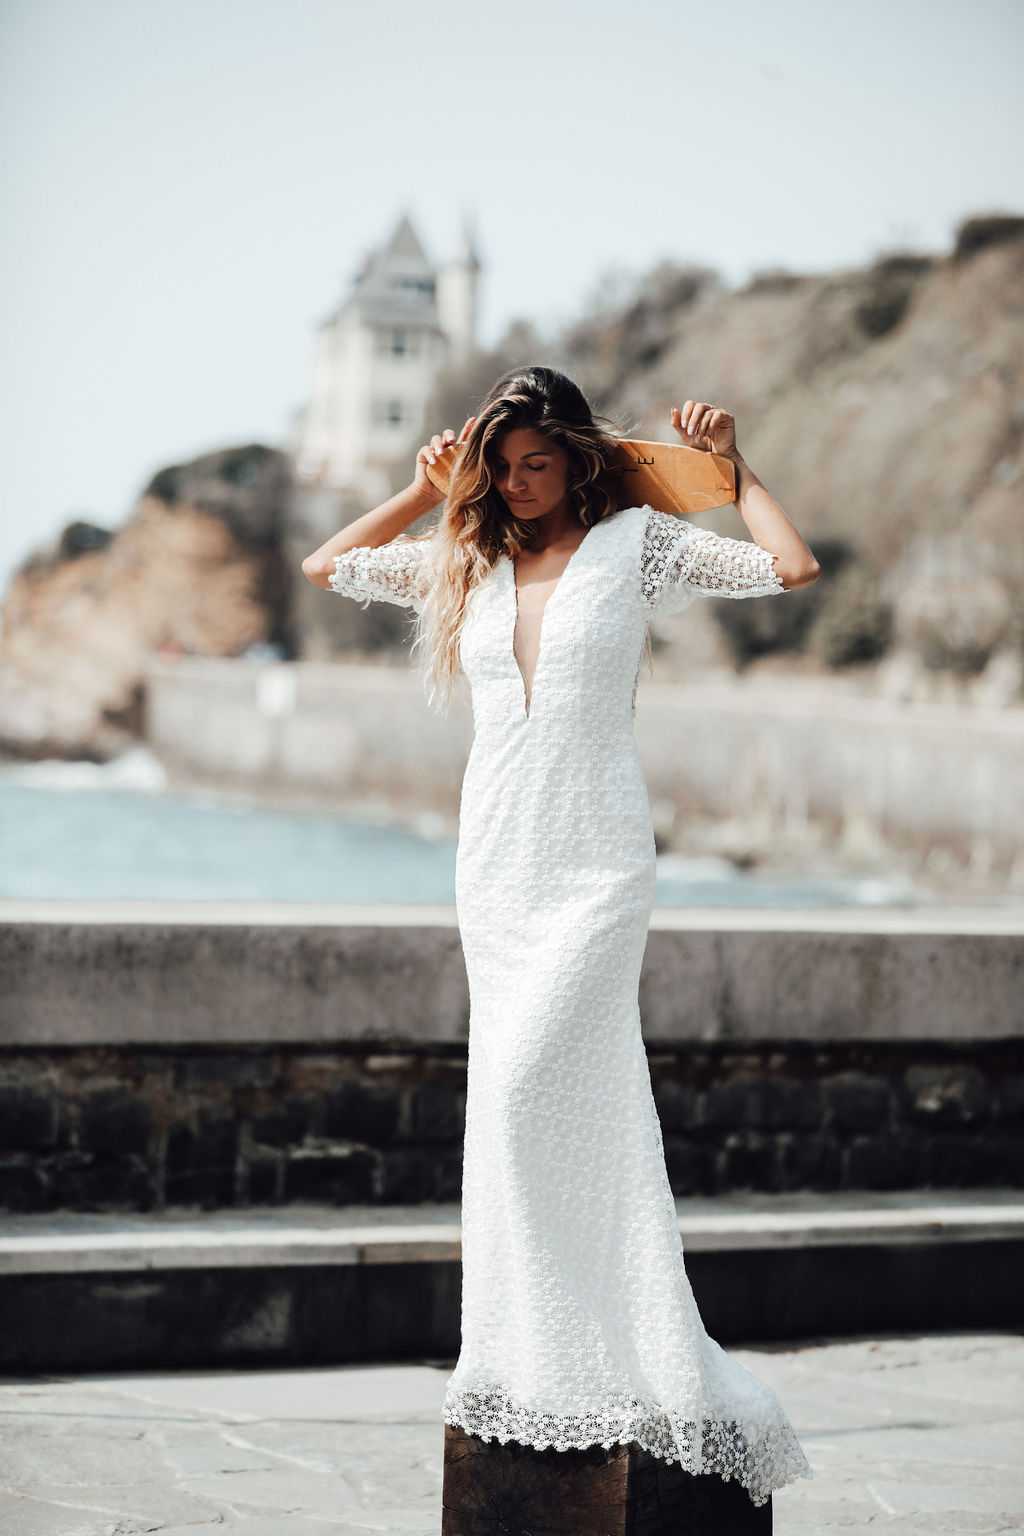 Adelaide-robes-de-mariee-veganes-collection-2020-lamarieesouslesetoiles